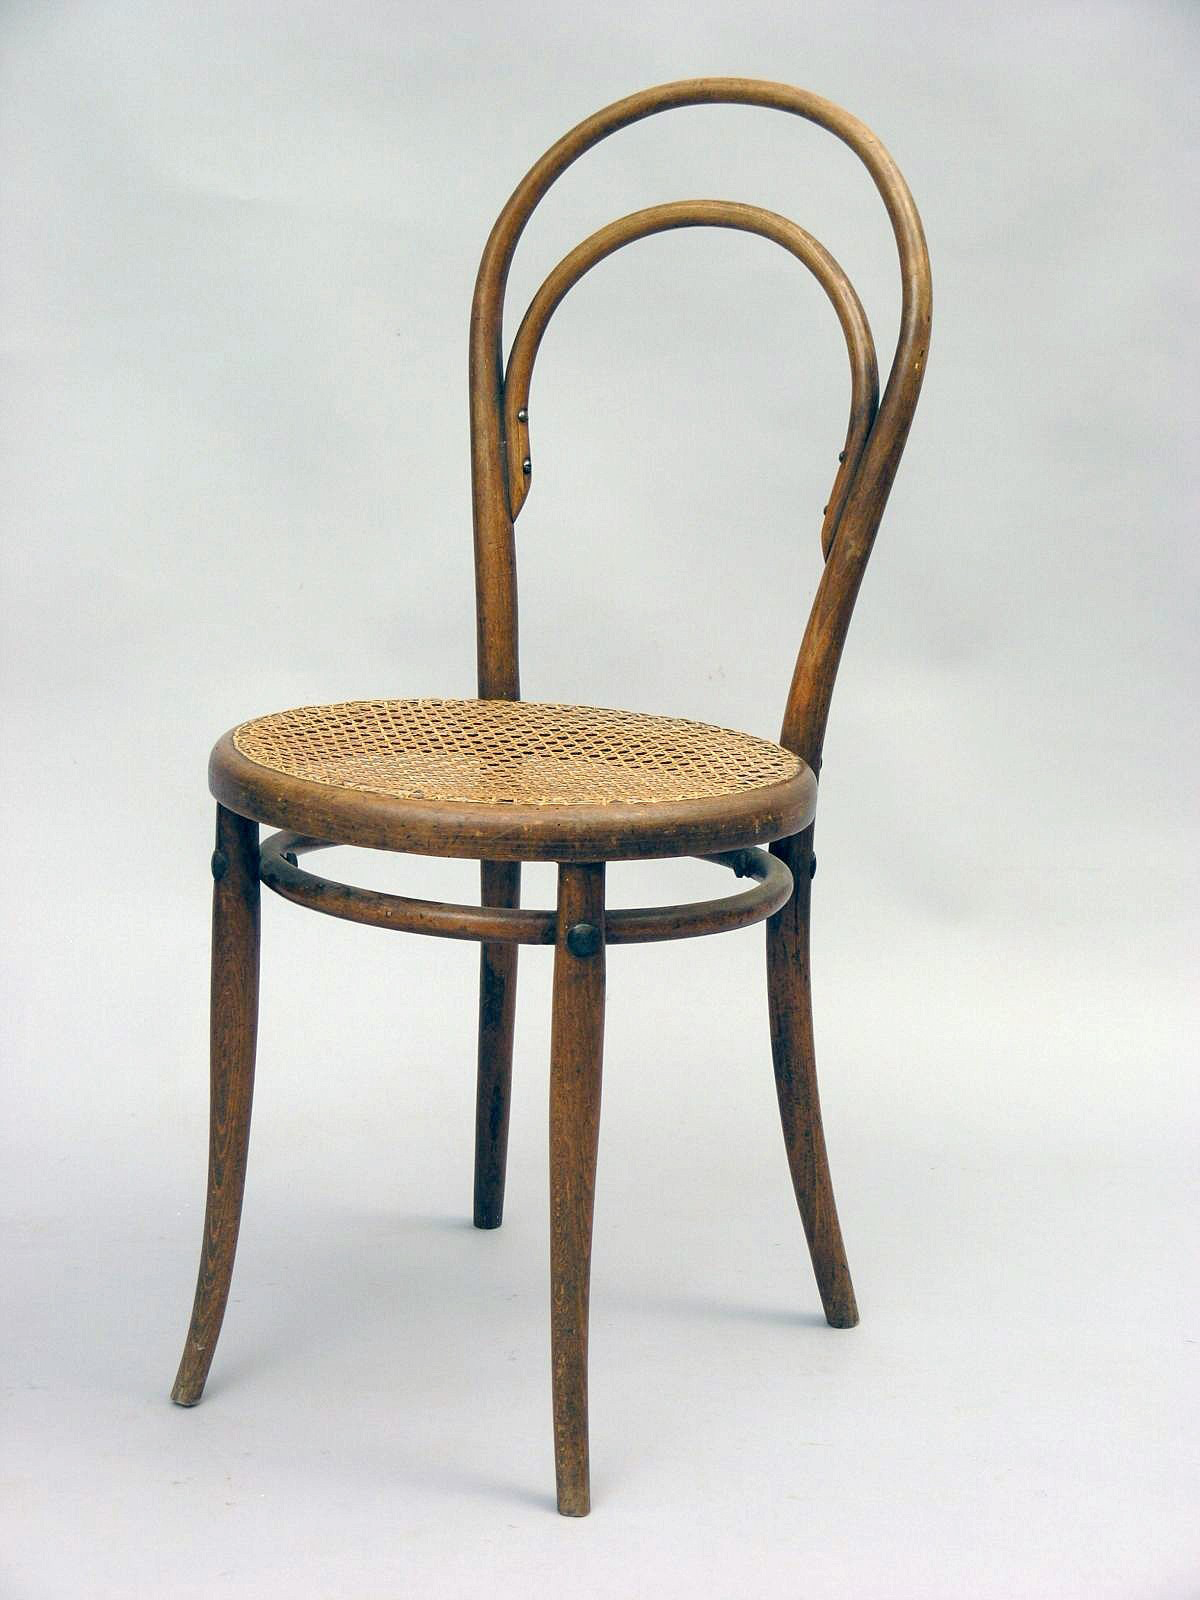 Old wooden chair styles - Still In Production